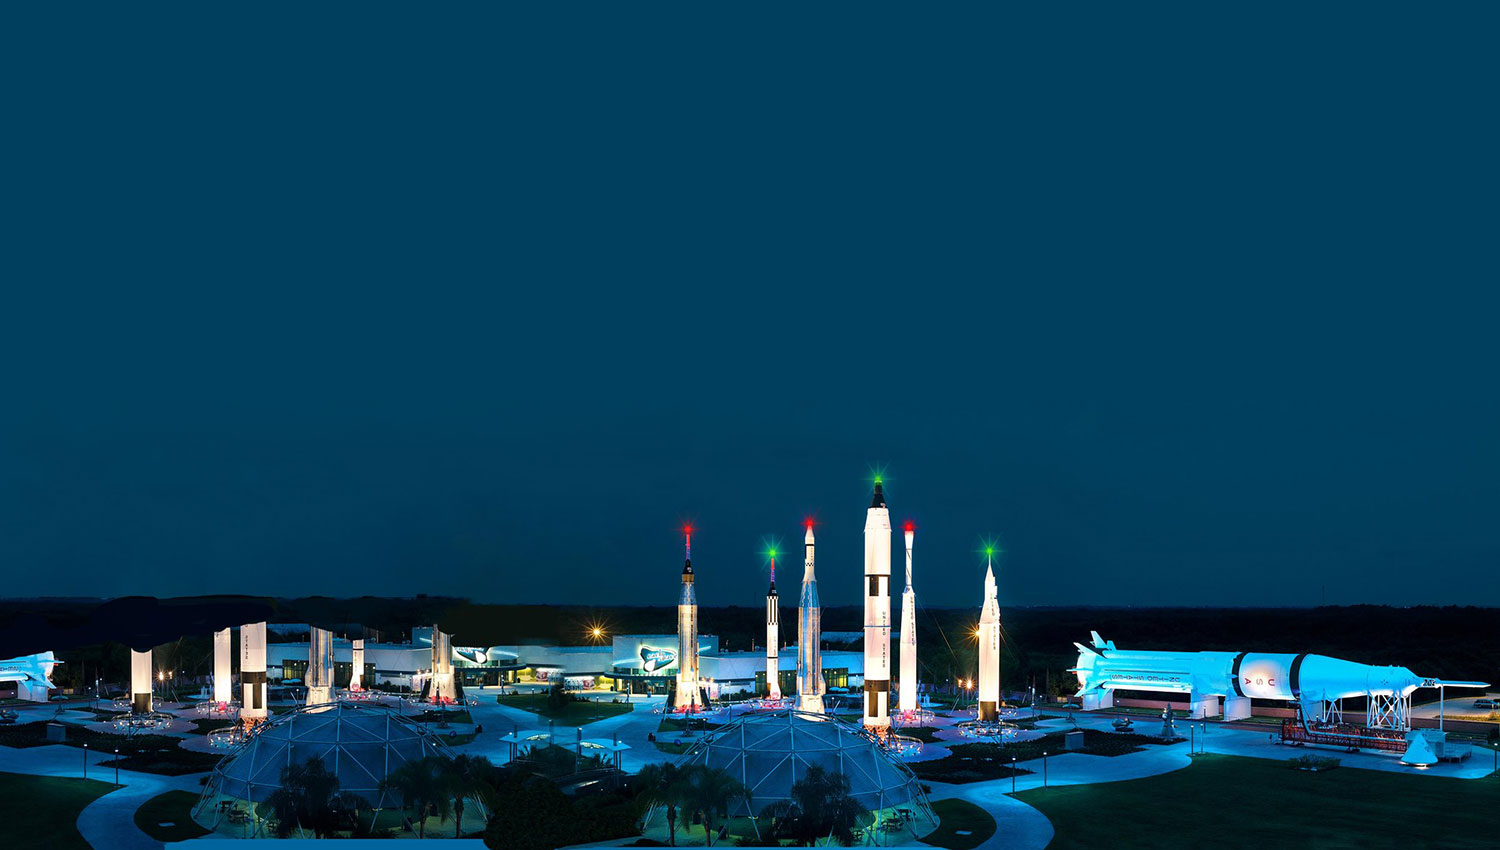 Kennedy Space Center which features a number of incredible exhibits and displays